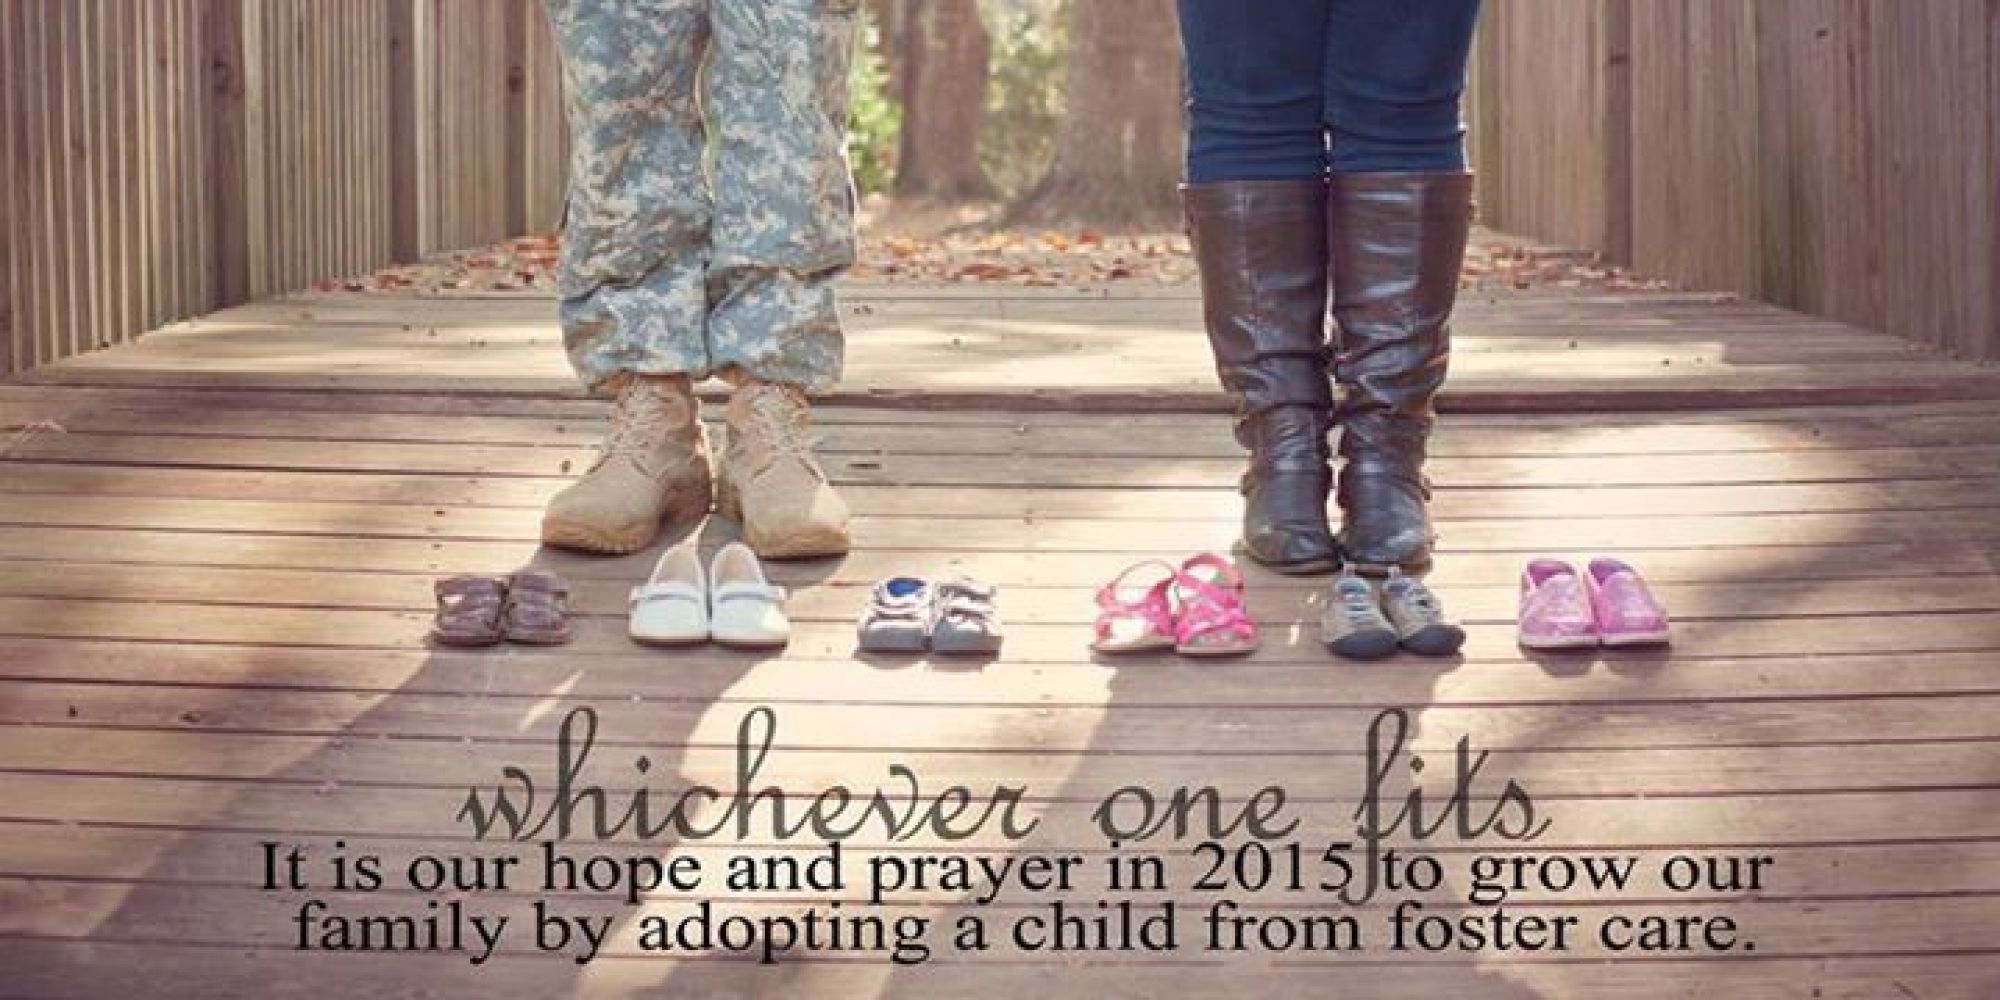 o-FOSTER-CARE-ADOPTION-facebook